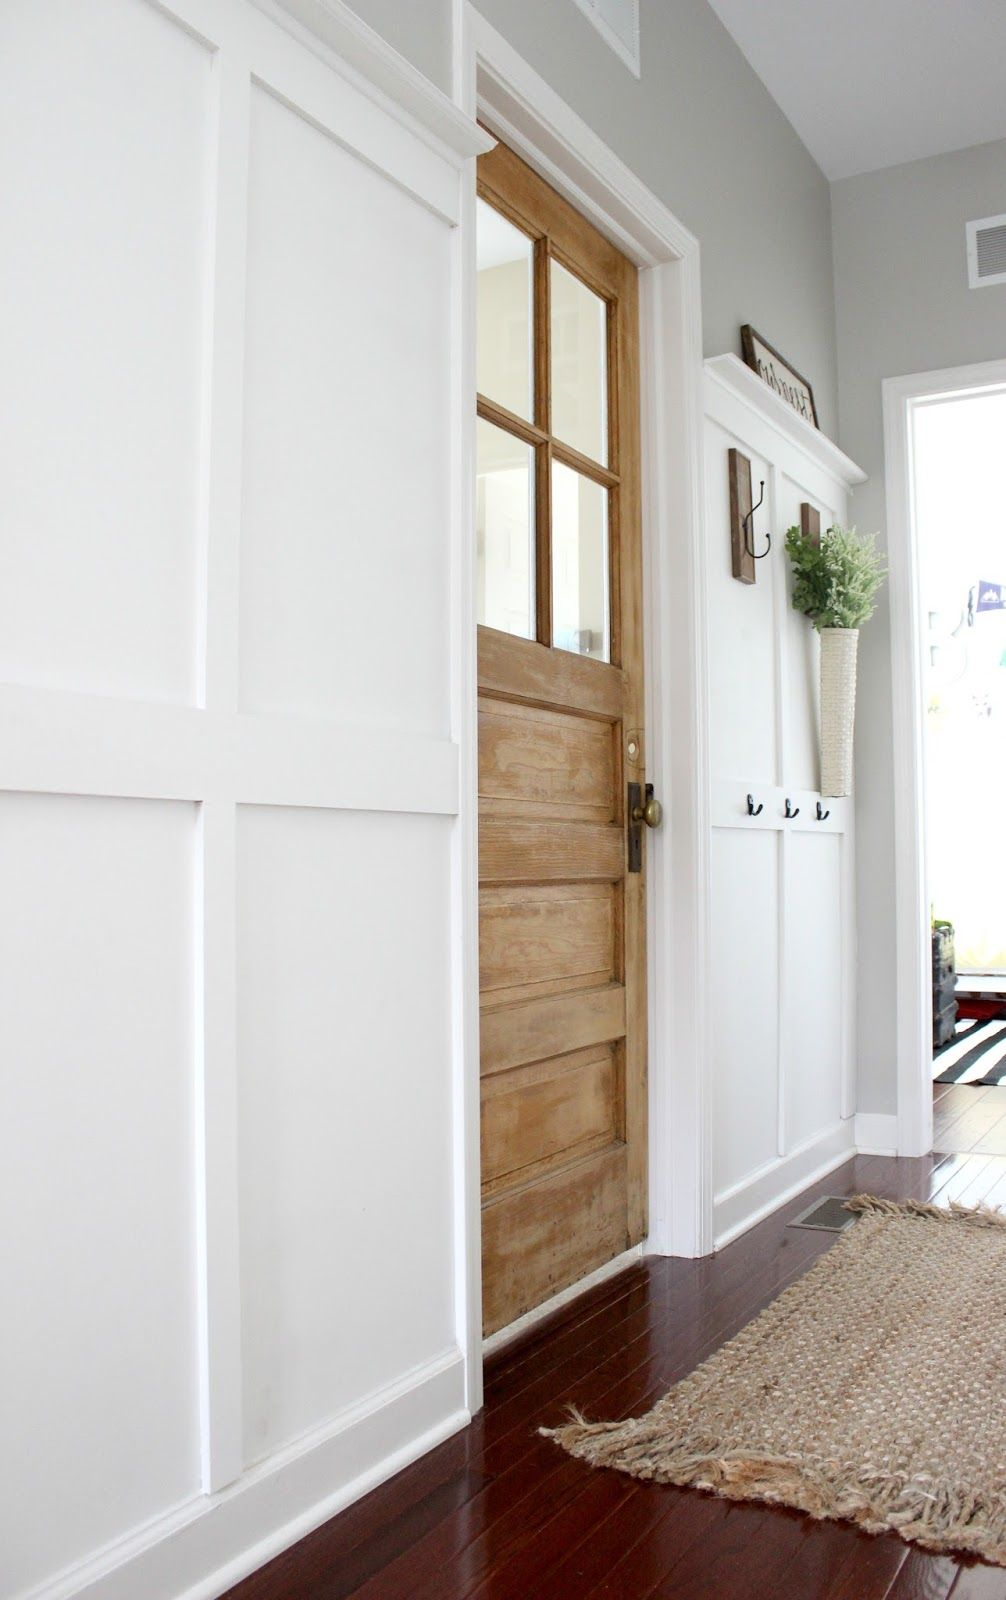 Old Vintage Door For The Laundry Room Farmhouse Interior Doors Laundry Room Doors Farmhouse Interior